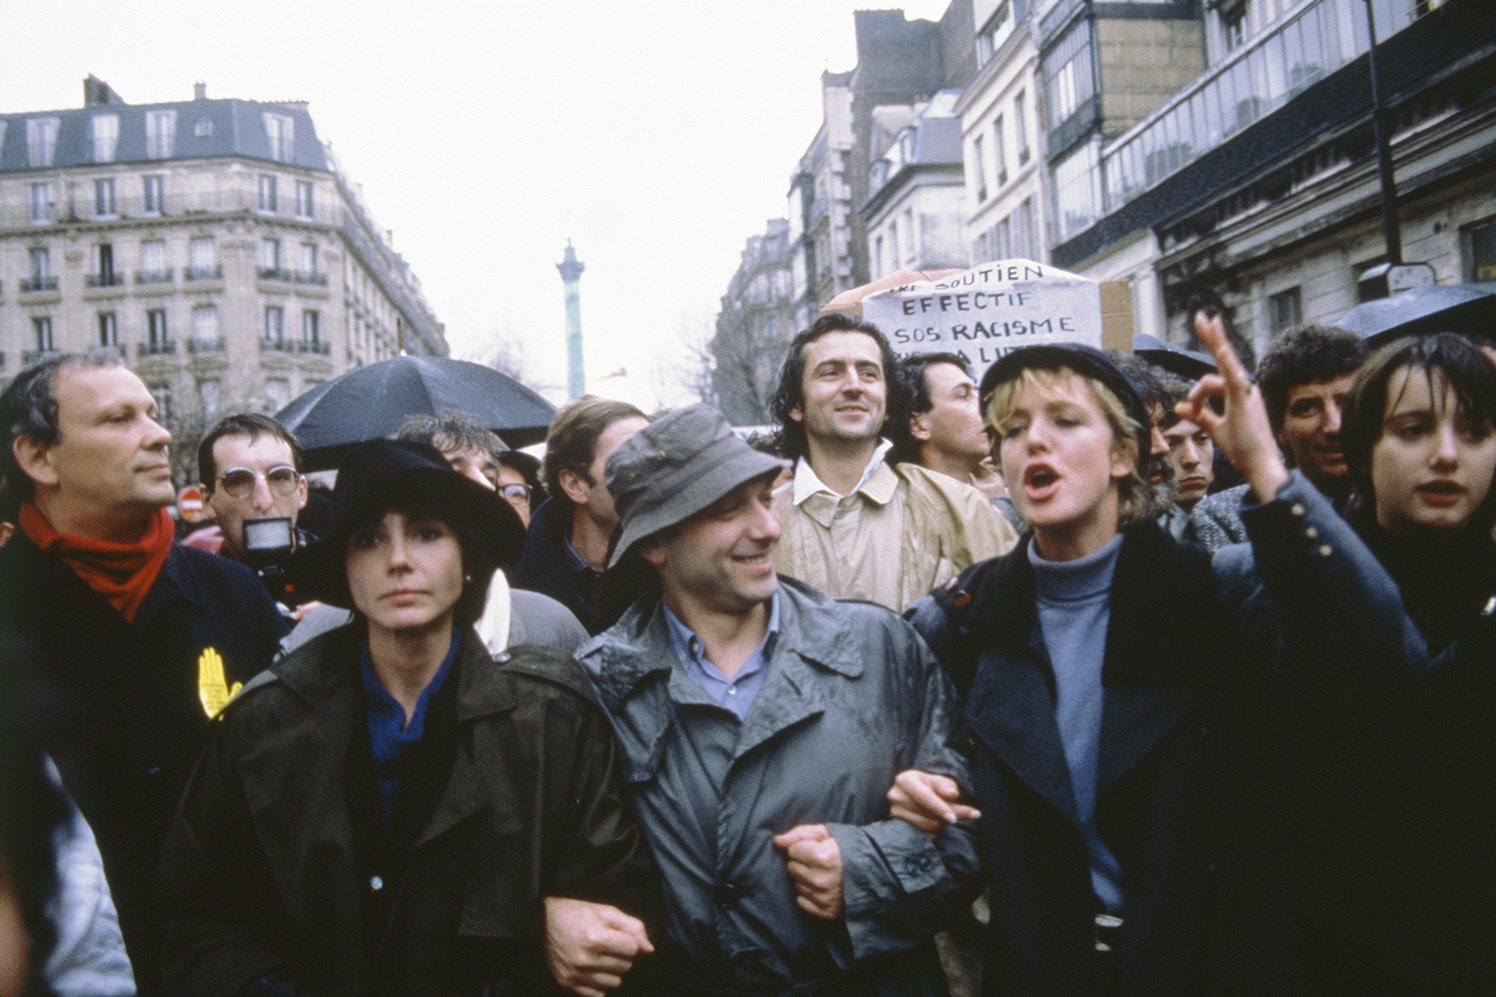 Bernard-Henri Levy among the crowd during a demonstration for SOS Racisme in 1985.